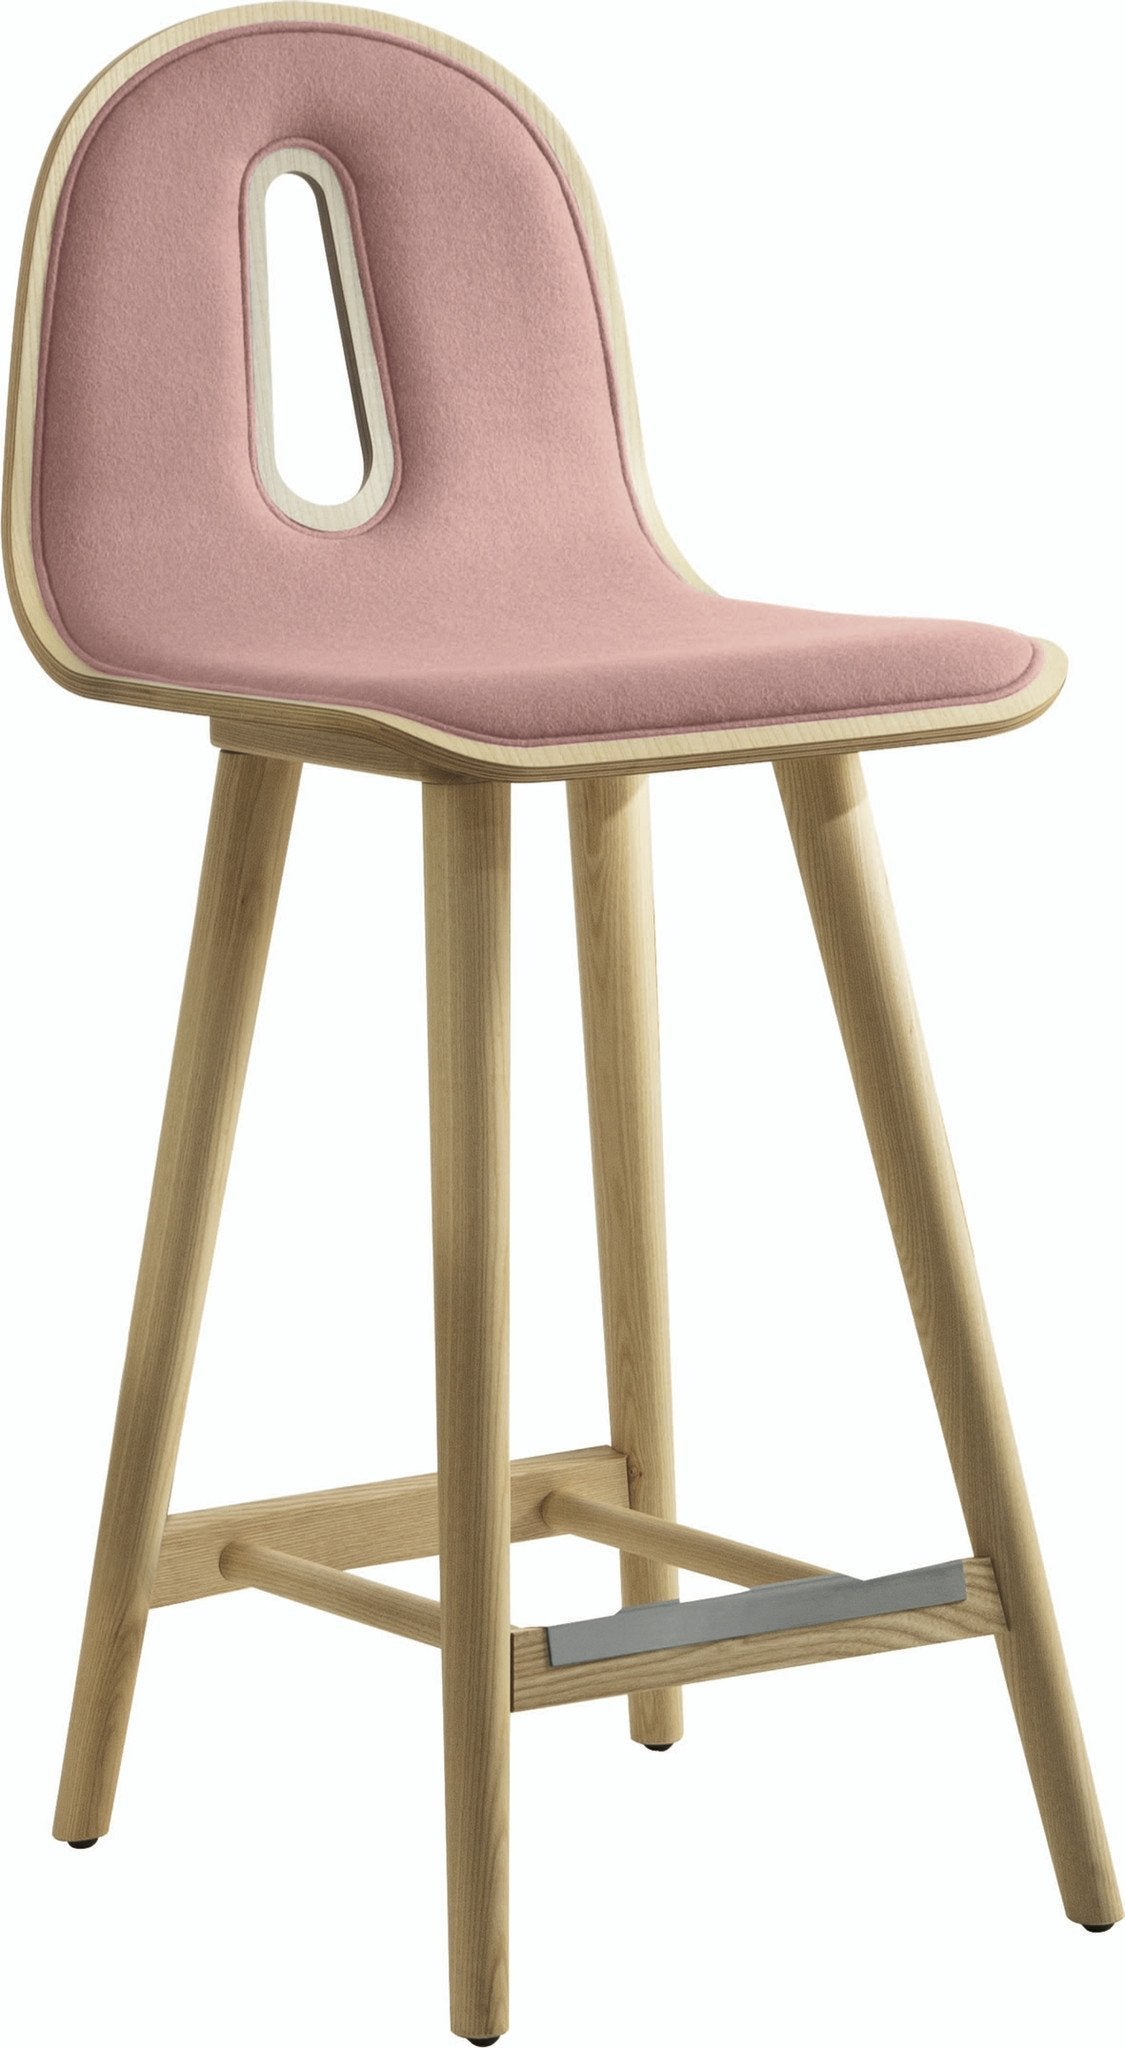 Gotham Woody High Stool-Chairs & More-Contract Furniture Store